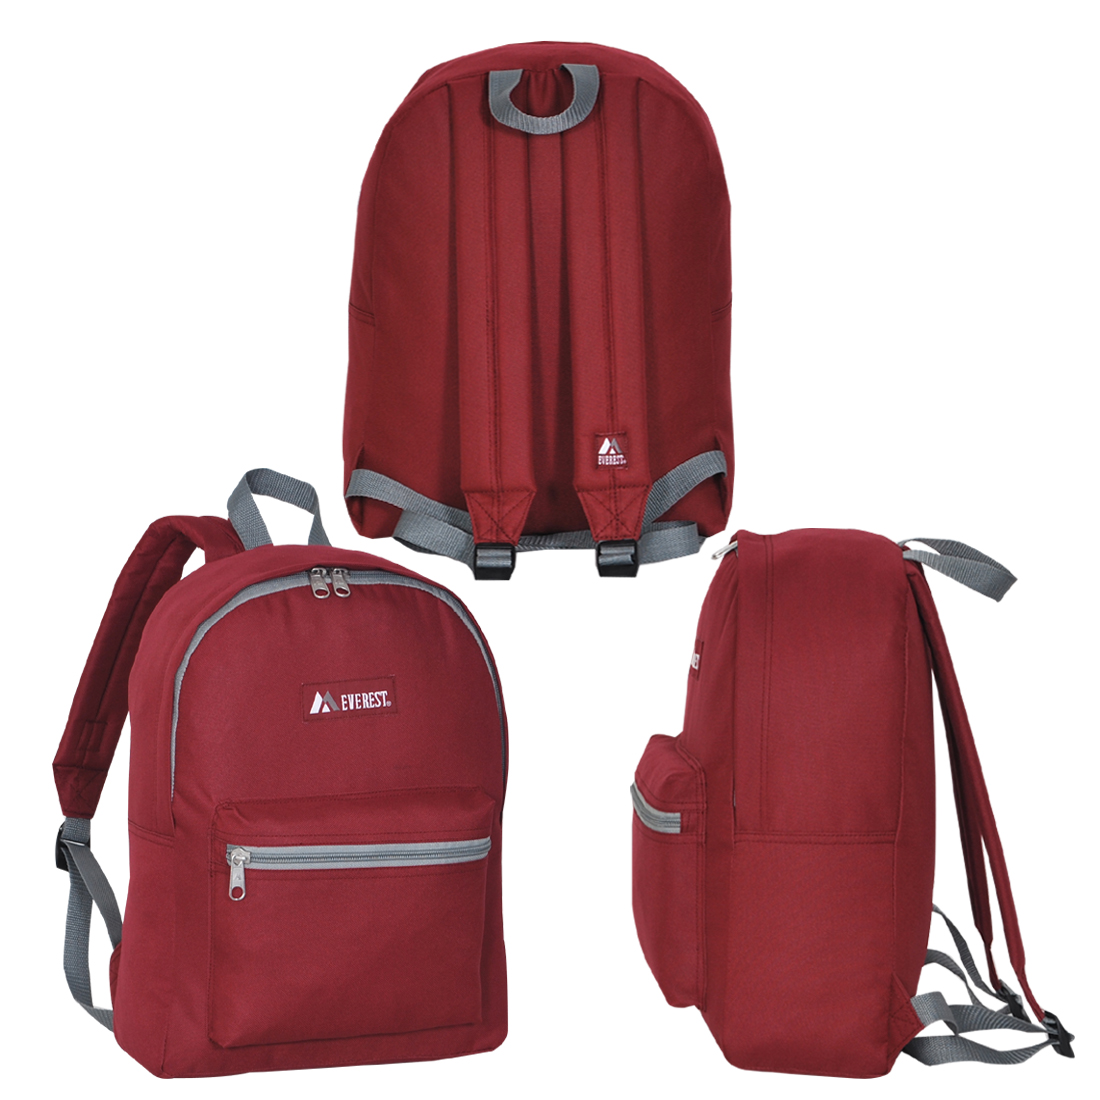 Backpacks, Wholesale Backpacks, School Backpacks, Book Bags